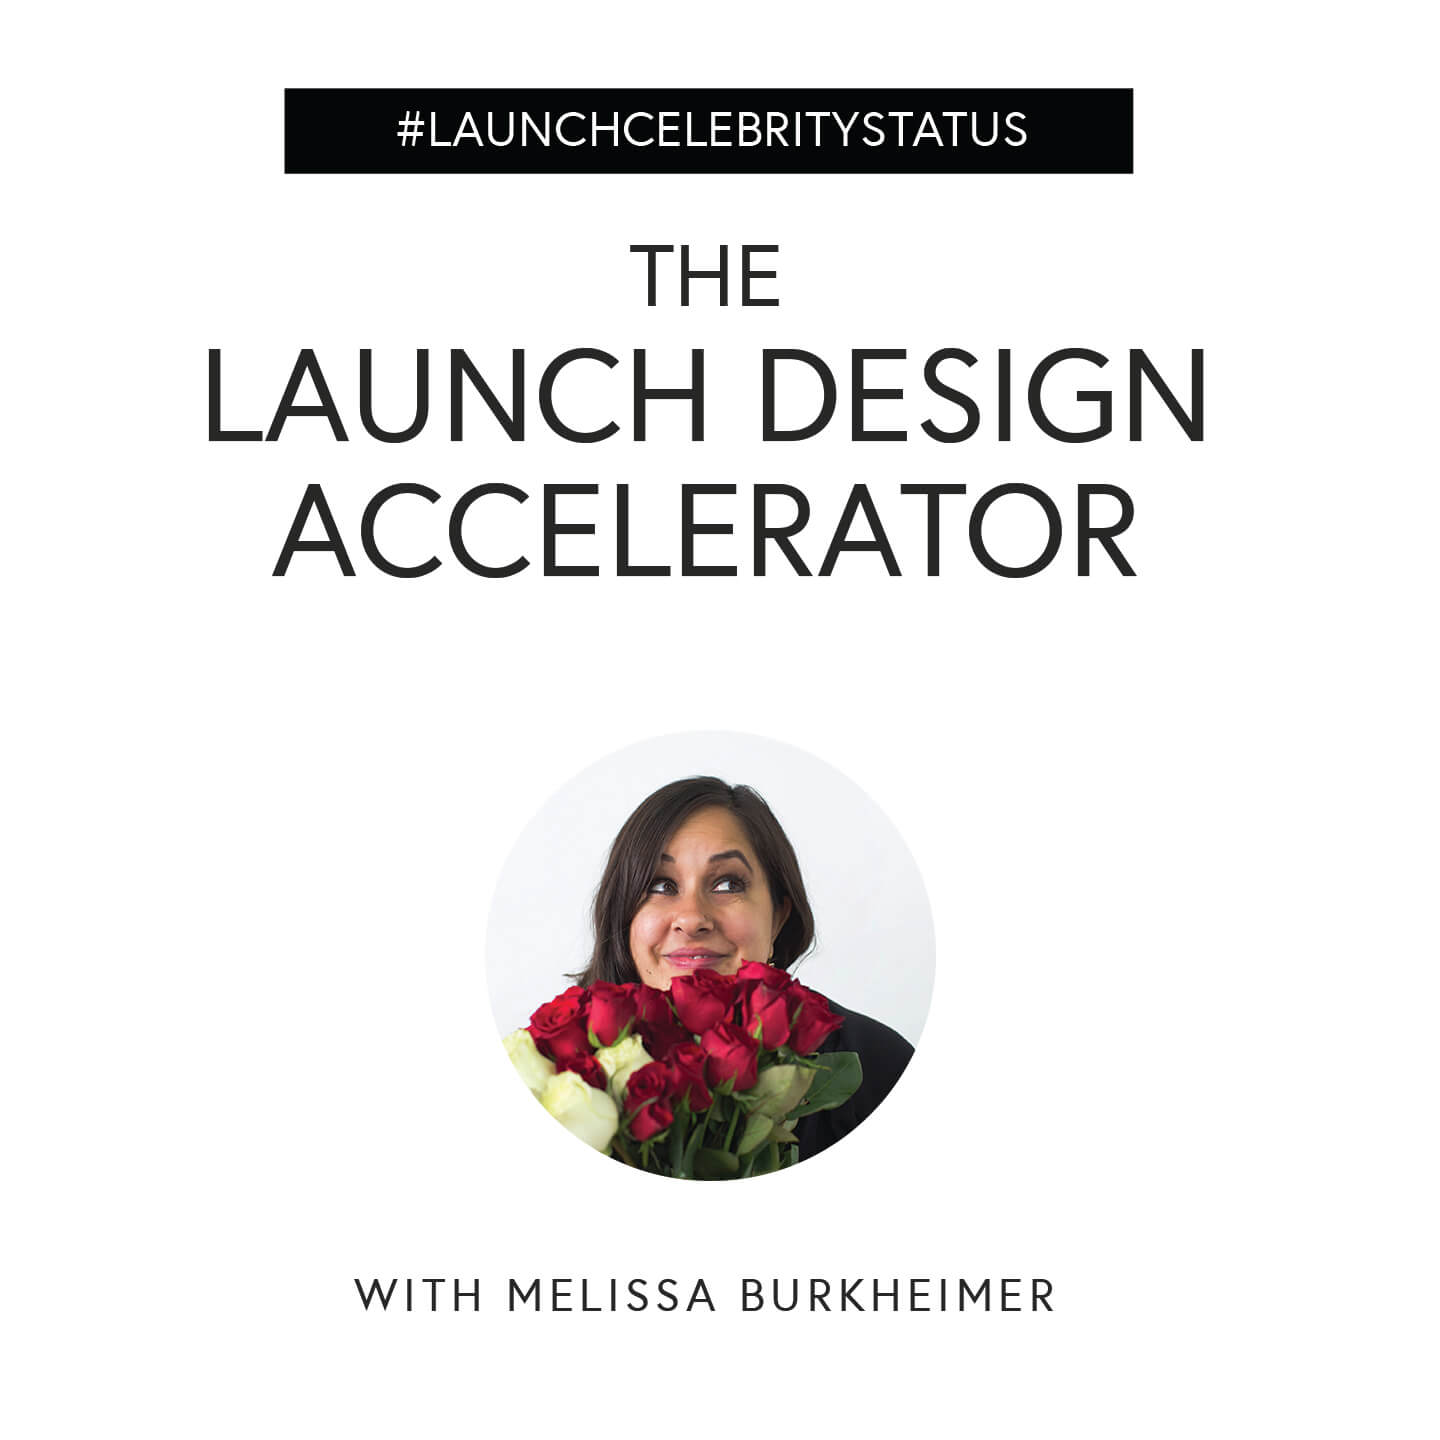 LAUNCH DESIGN ACCELERATOR (1)